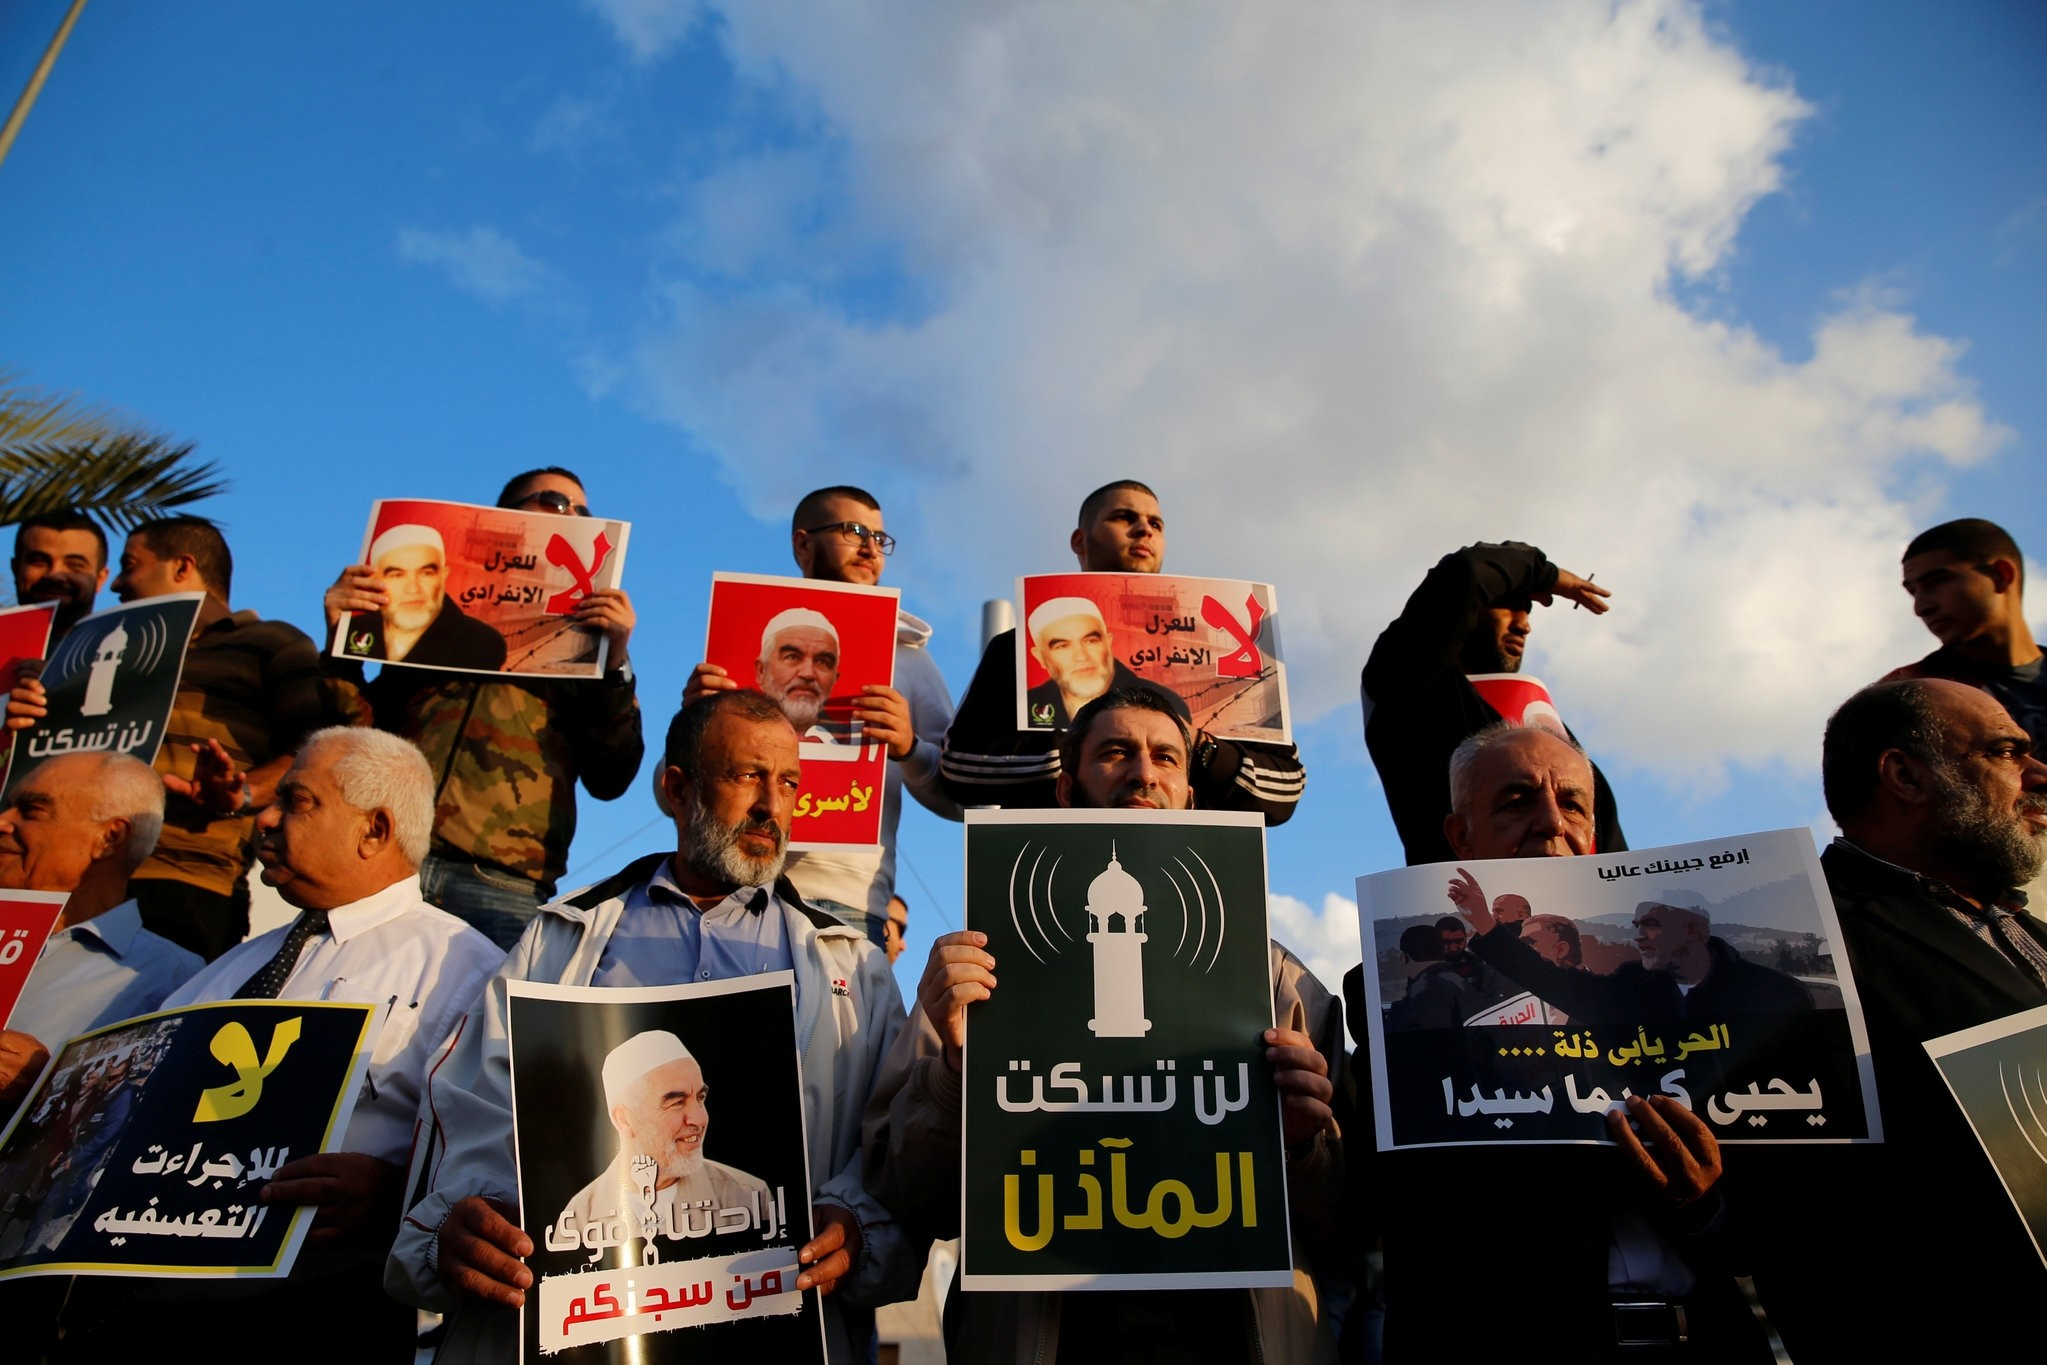 Palestinians protest against the initial approval of a bill to enforce lowering the volume of mosque loudspeakers calling worshippers to prayer, November 17, 2016. (REUTERS PHOTO)